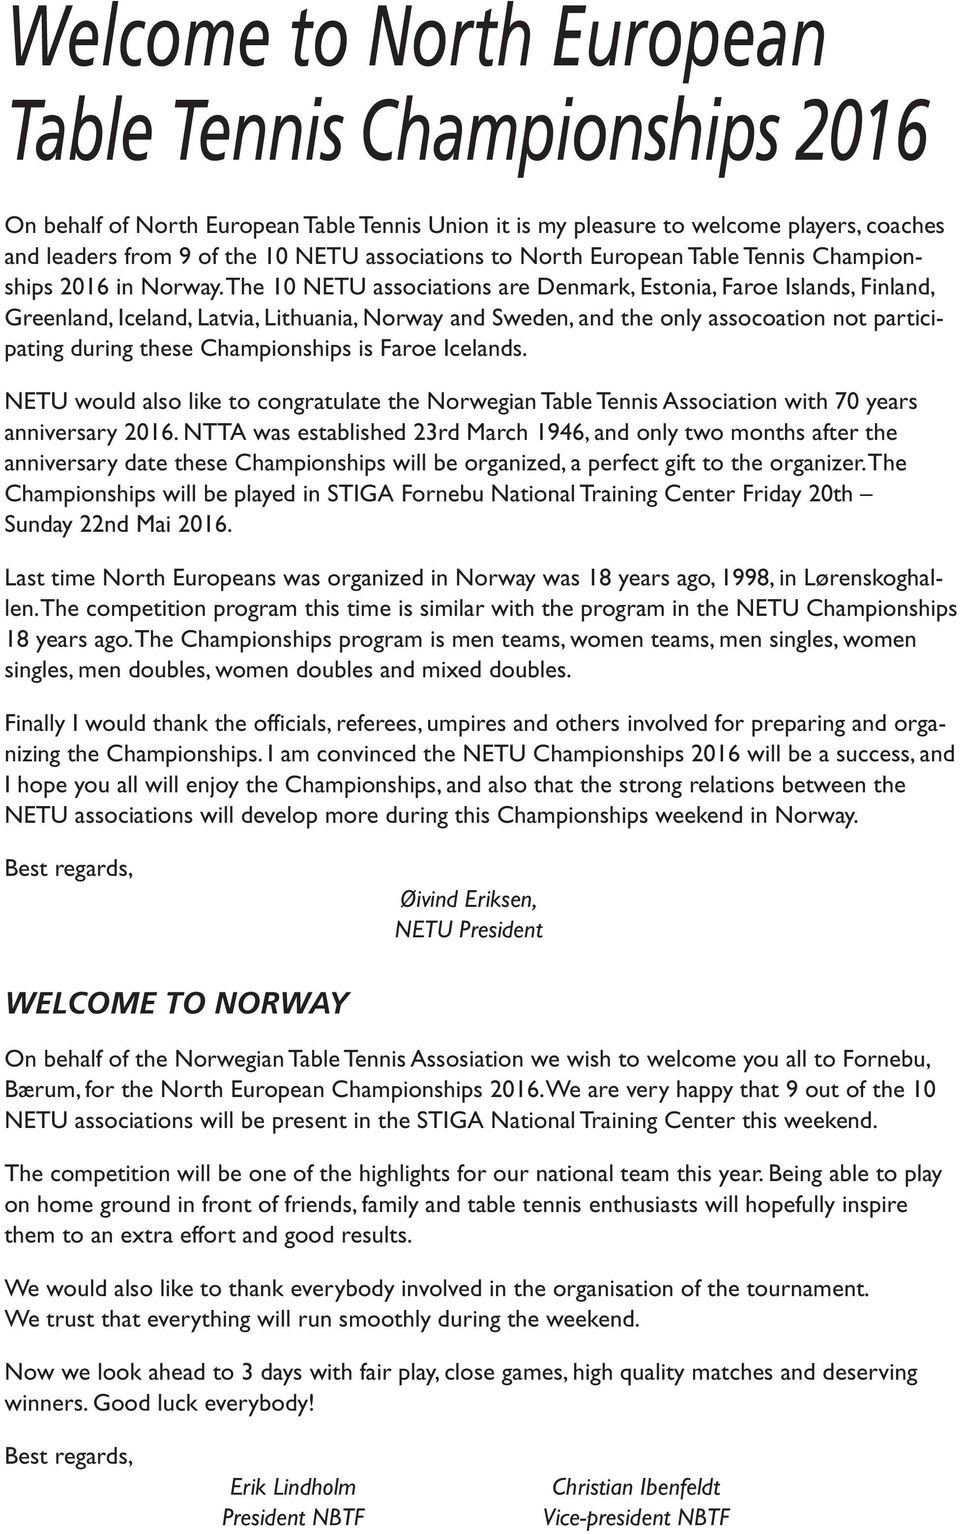 The 10 NETU associations are Denmark, Estonia, Faroe Islands, Finland, Greenland, Iceland, Latvia, Lithuania, Norway and Sweden, and the only assocoation not participating during these Championships